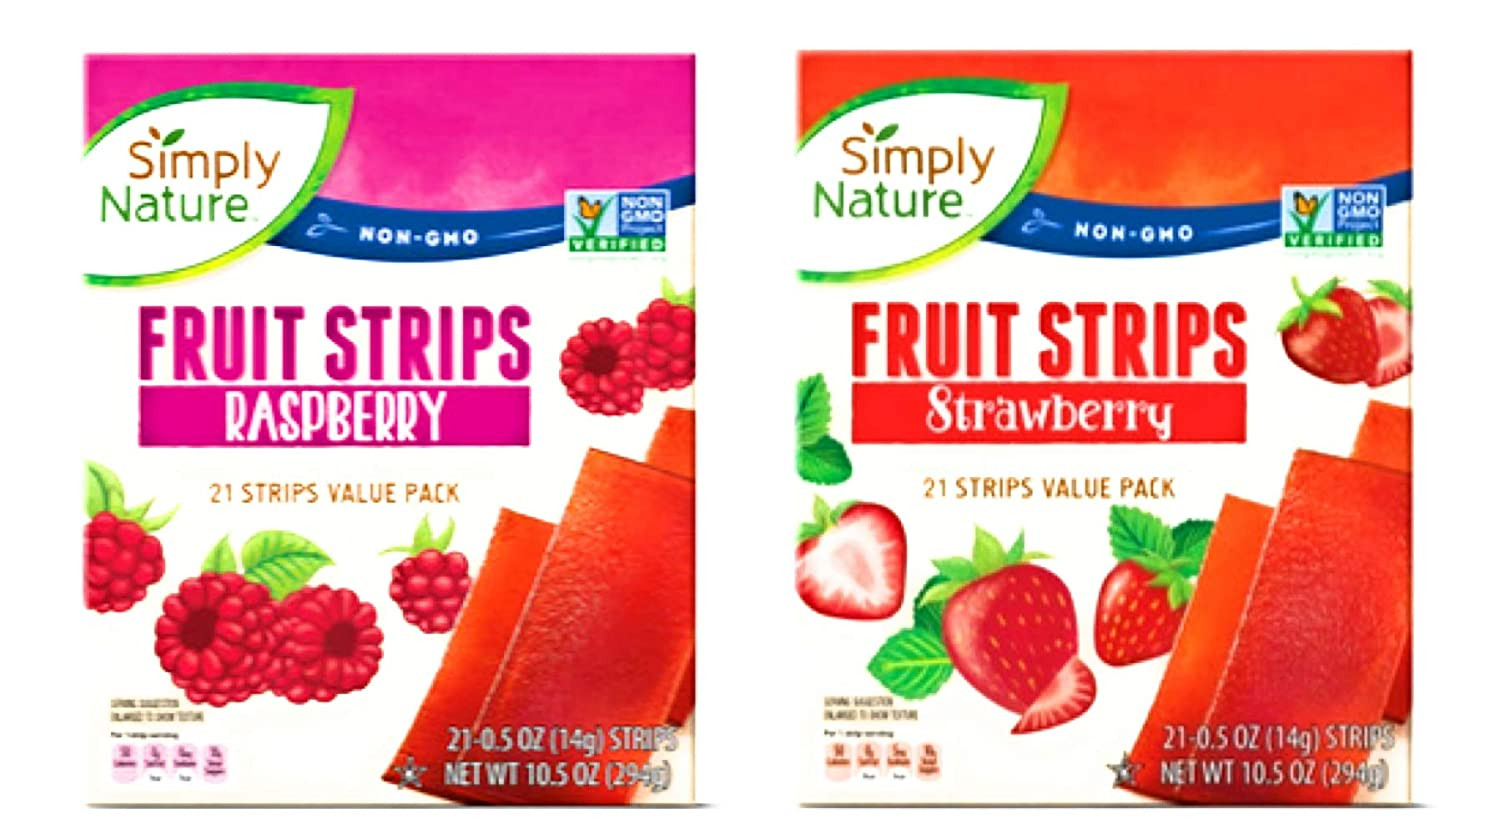 Simply Nature Fruit Strips Variety Value Pack 1 Box Strawberry and 1 Box Raspberry